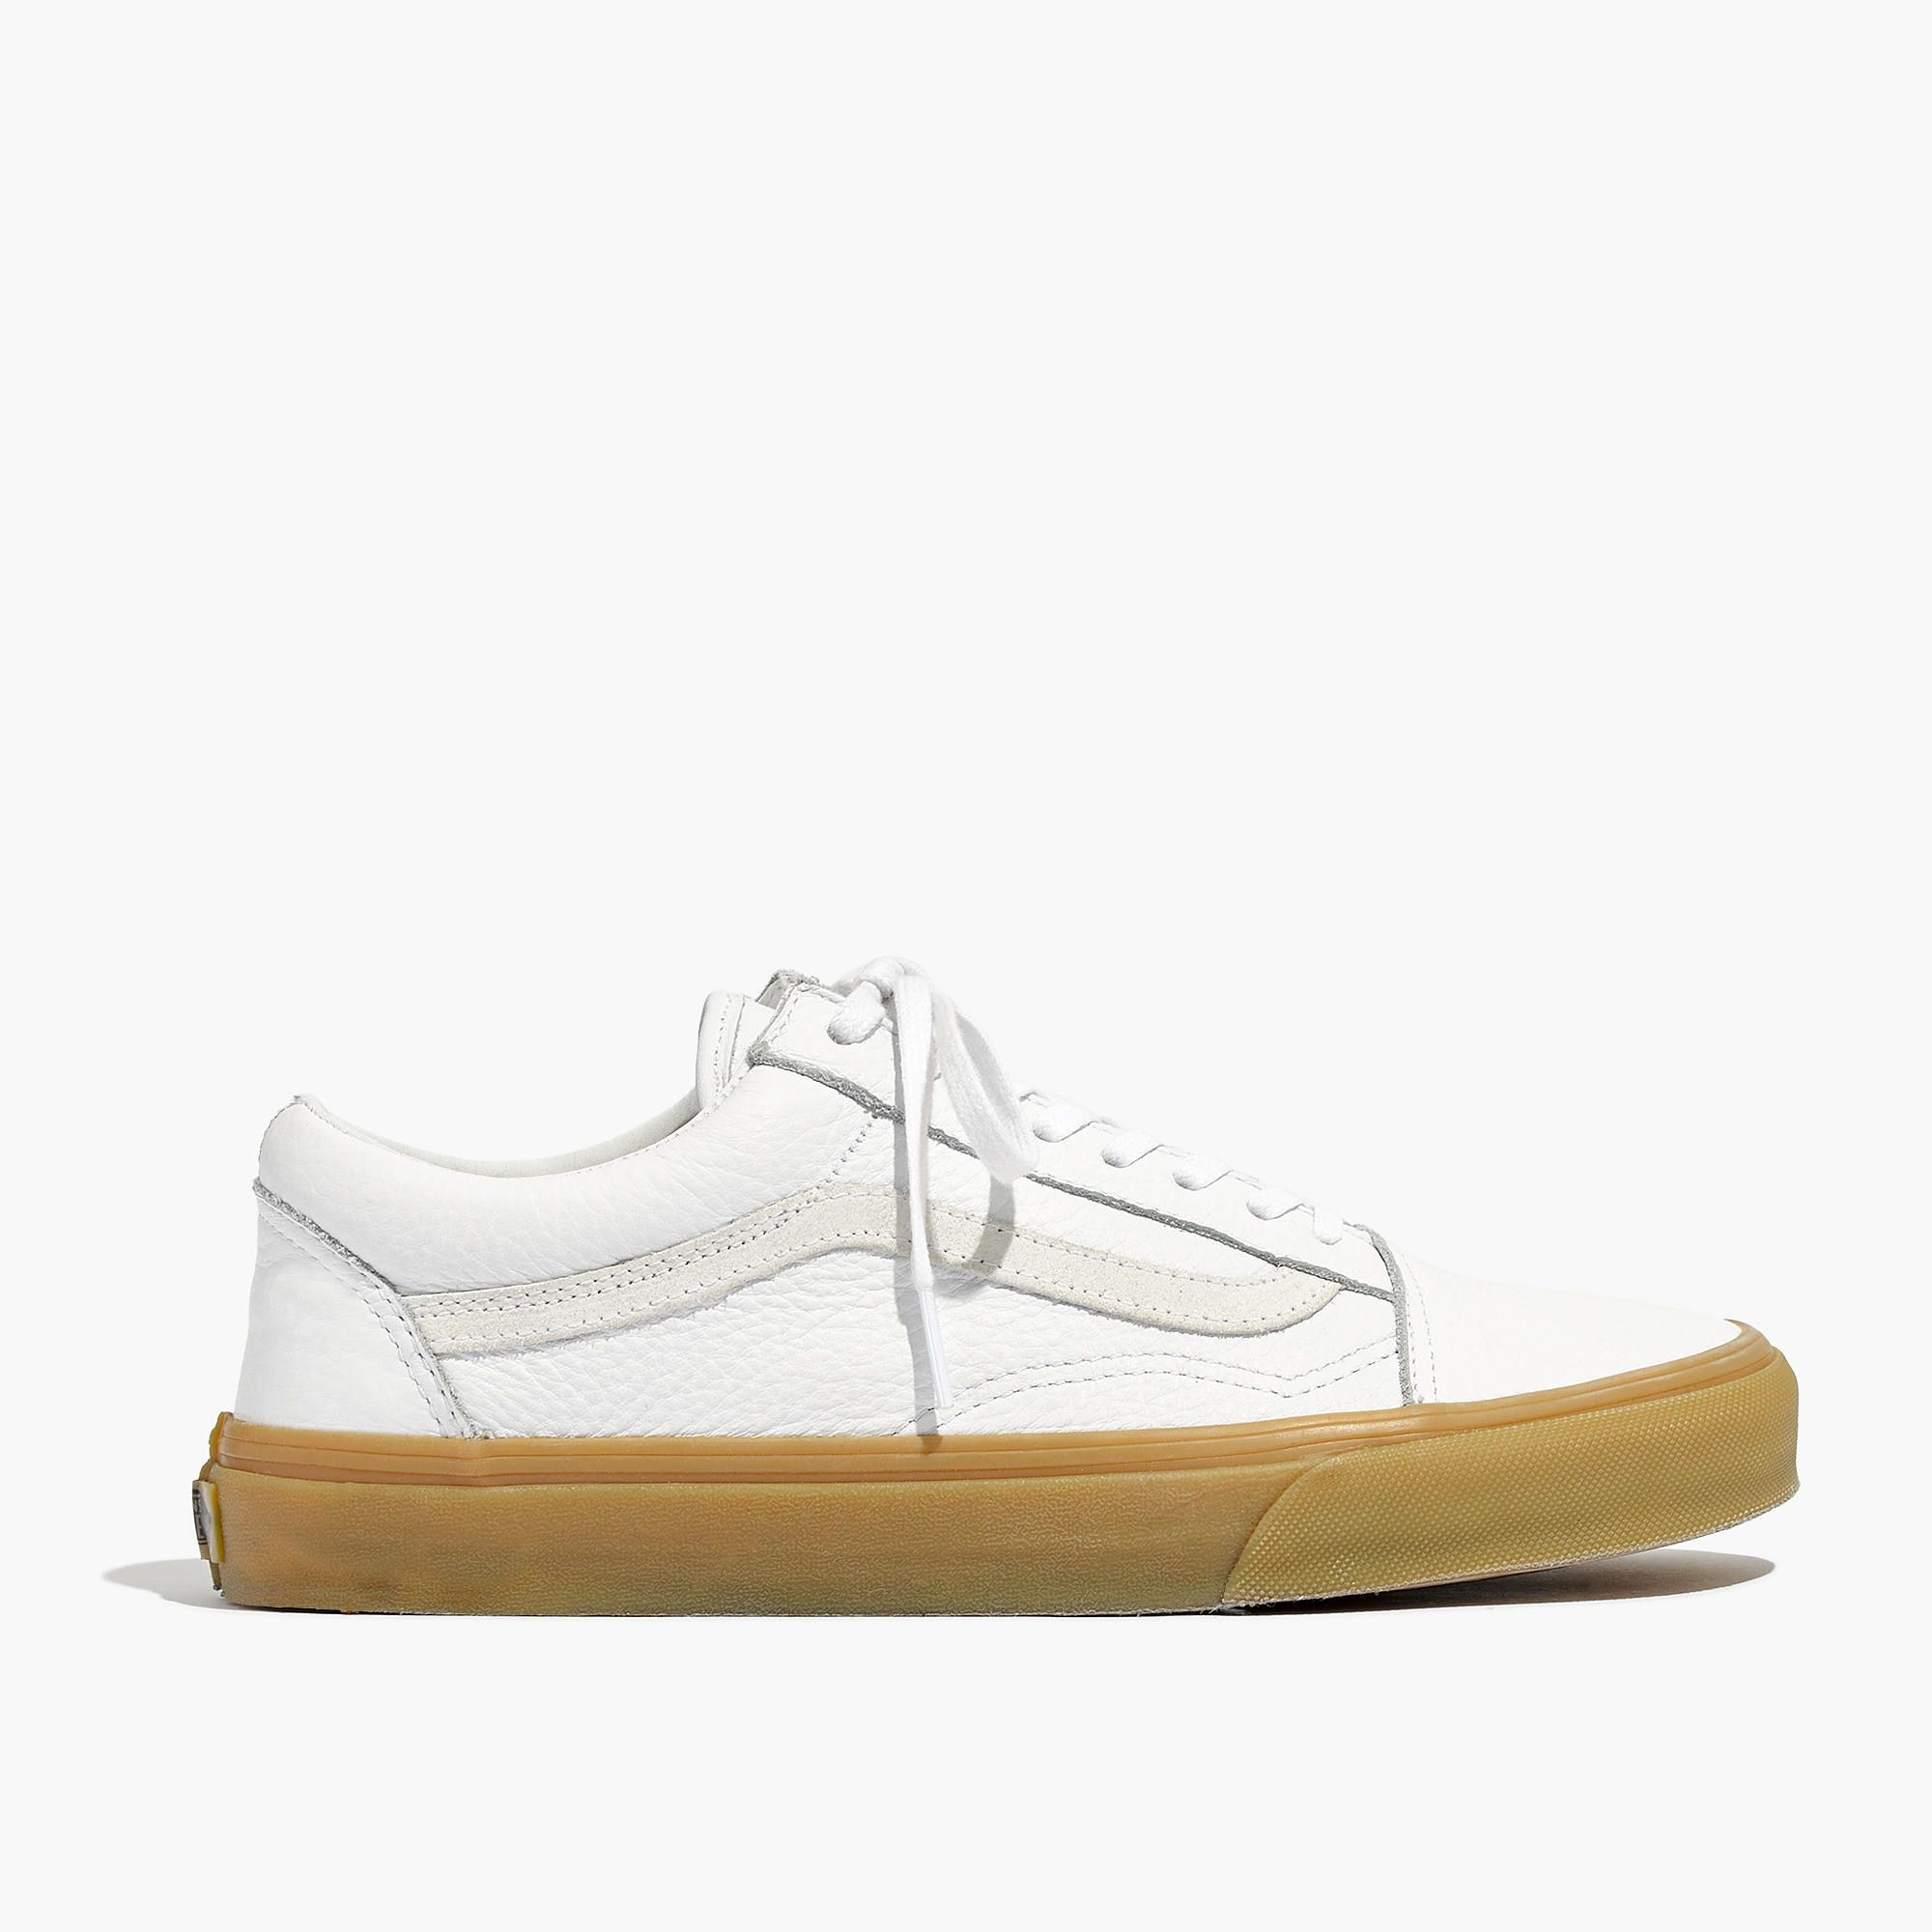 43d7e13c206 Madewell x Vans® Unisex Old Skool Lace-Up Sneakers in Tumbled Leather    sneakers